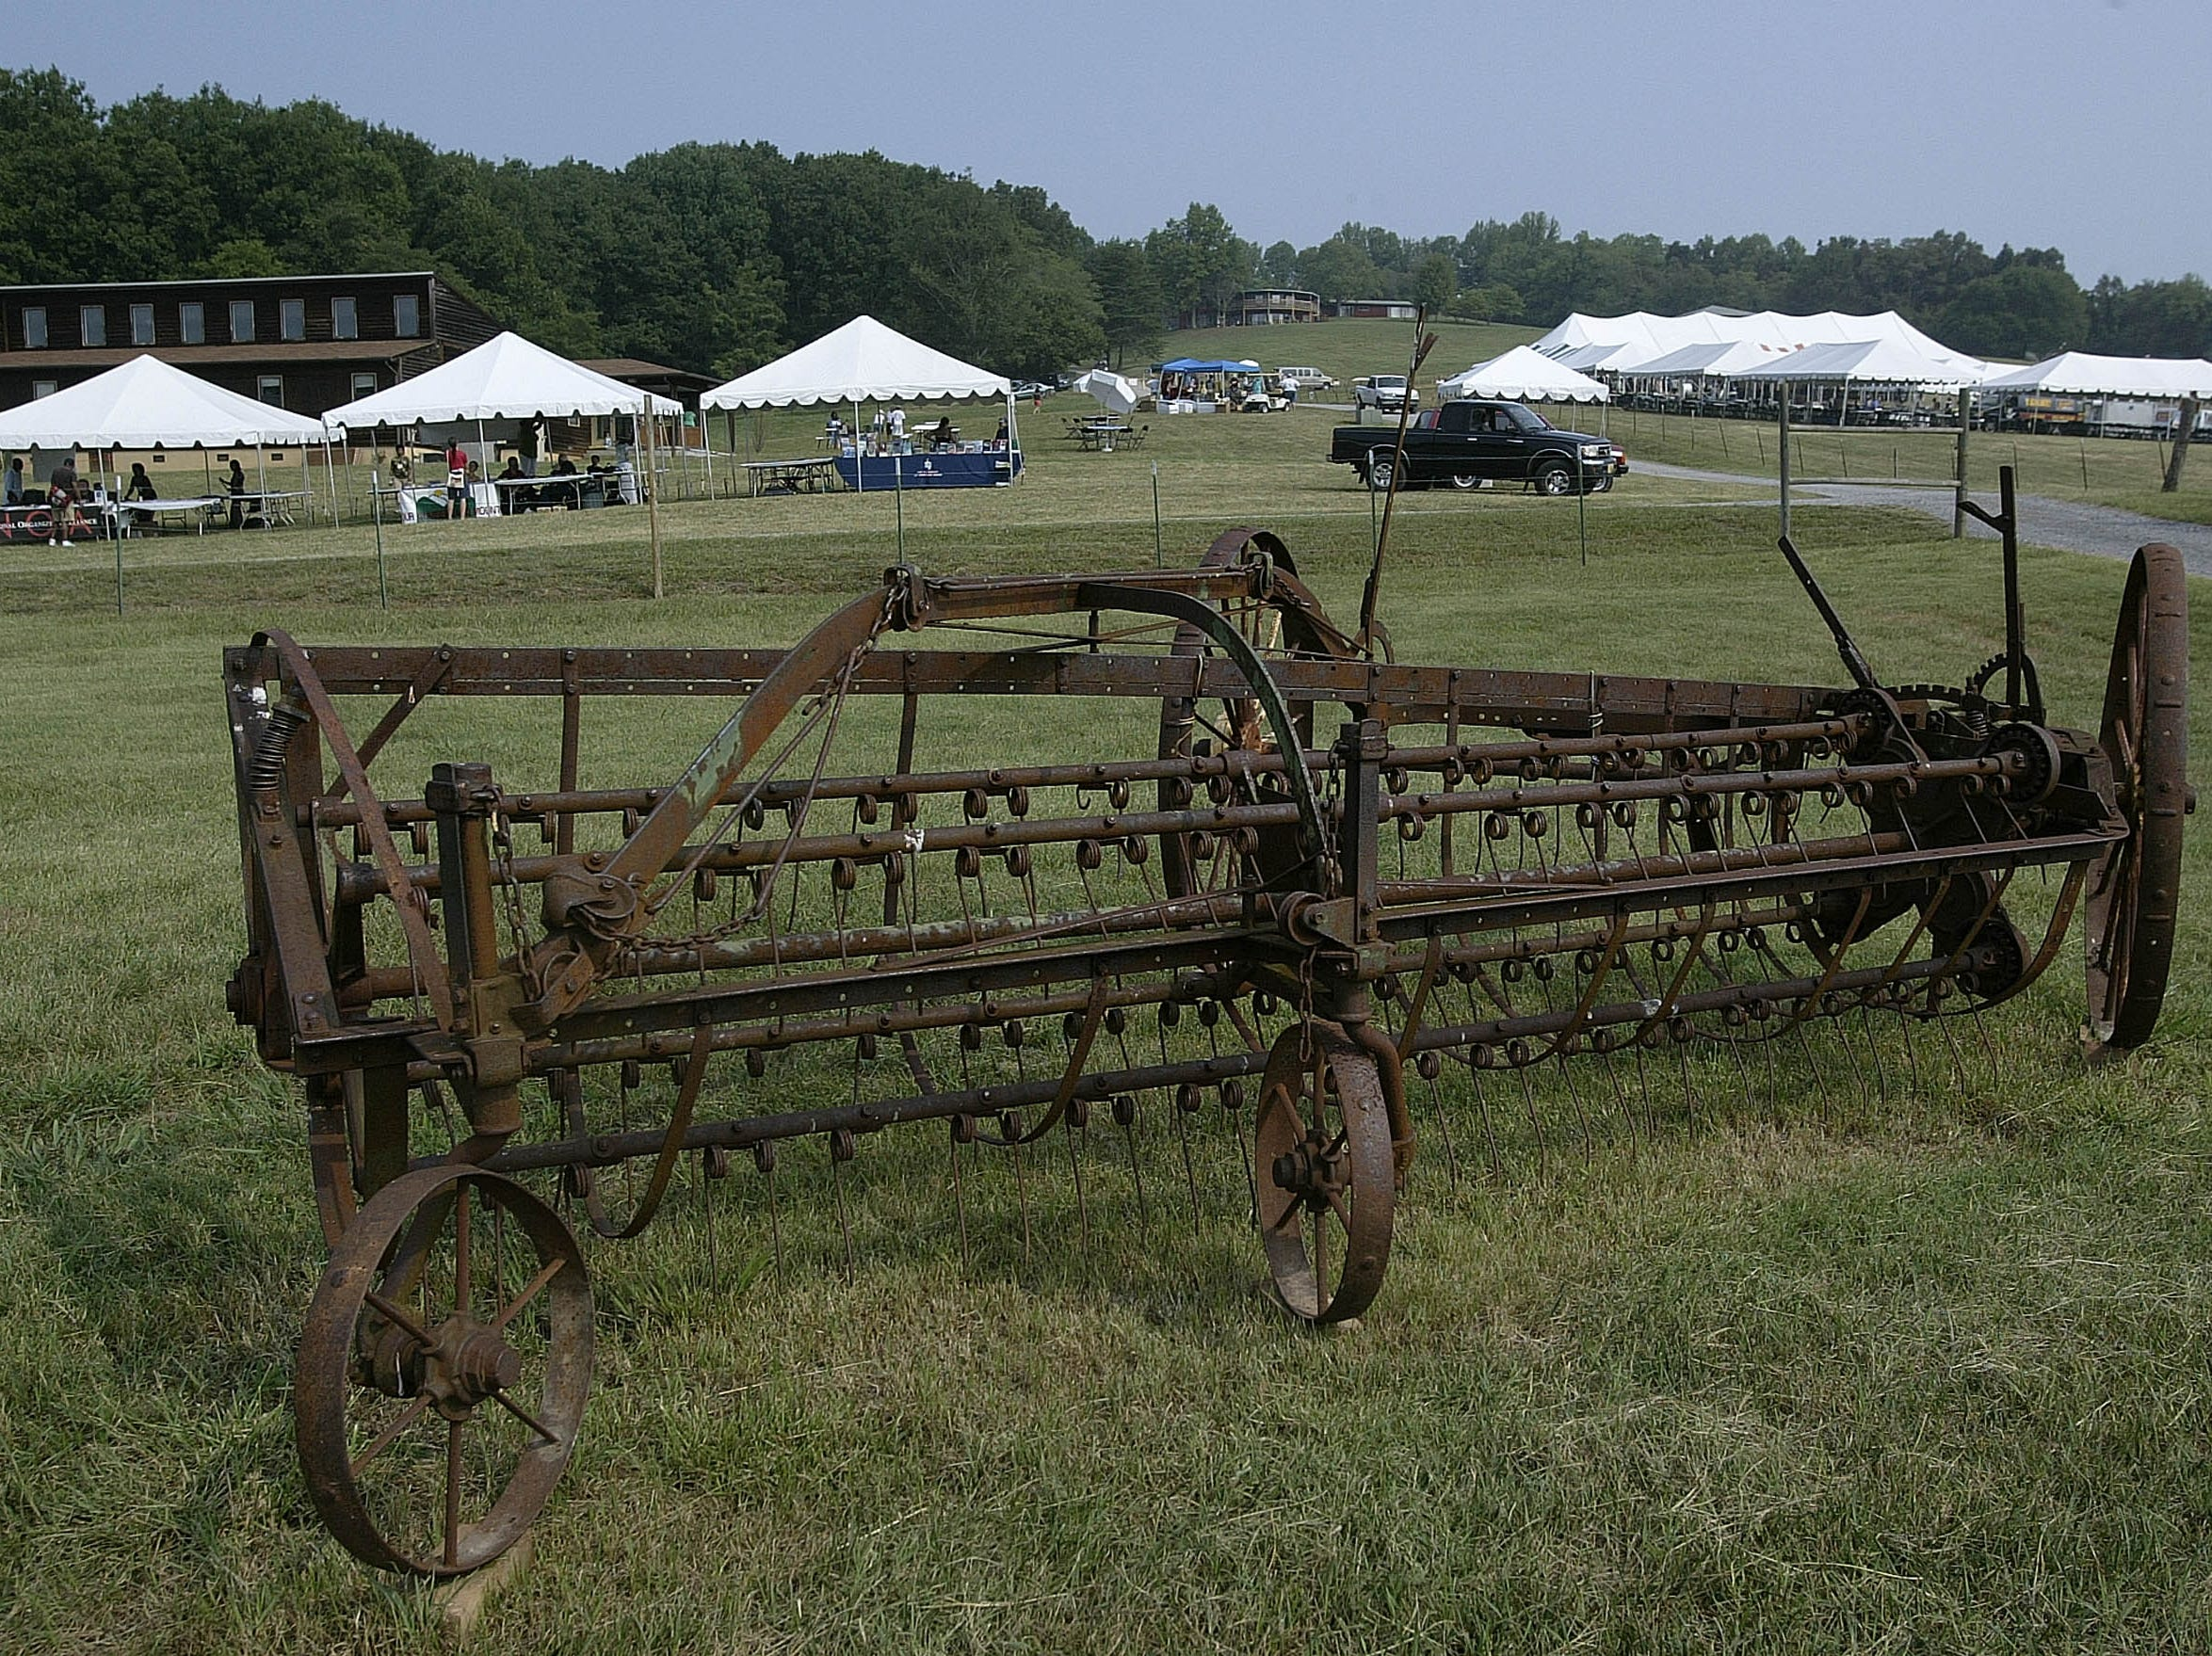 An antique piece of farm equipment sits near tents where participants sing and attend workshops during a gathering held  to mark the  anniversary of the Highlander Research and Education Center, Sept. 1, 2007 in New Market, Tenn.  It has been investigated by the House Committee on Un-American Activities, spied on by a governor of Georgia and marched on by the Klan, but the Highlander Research and Education Center has stuck around.